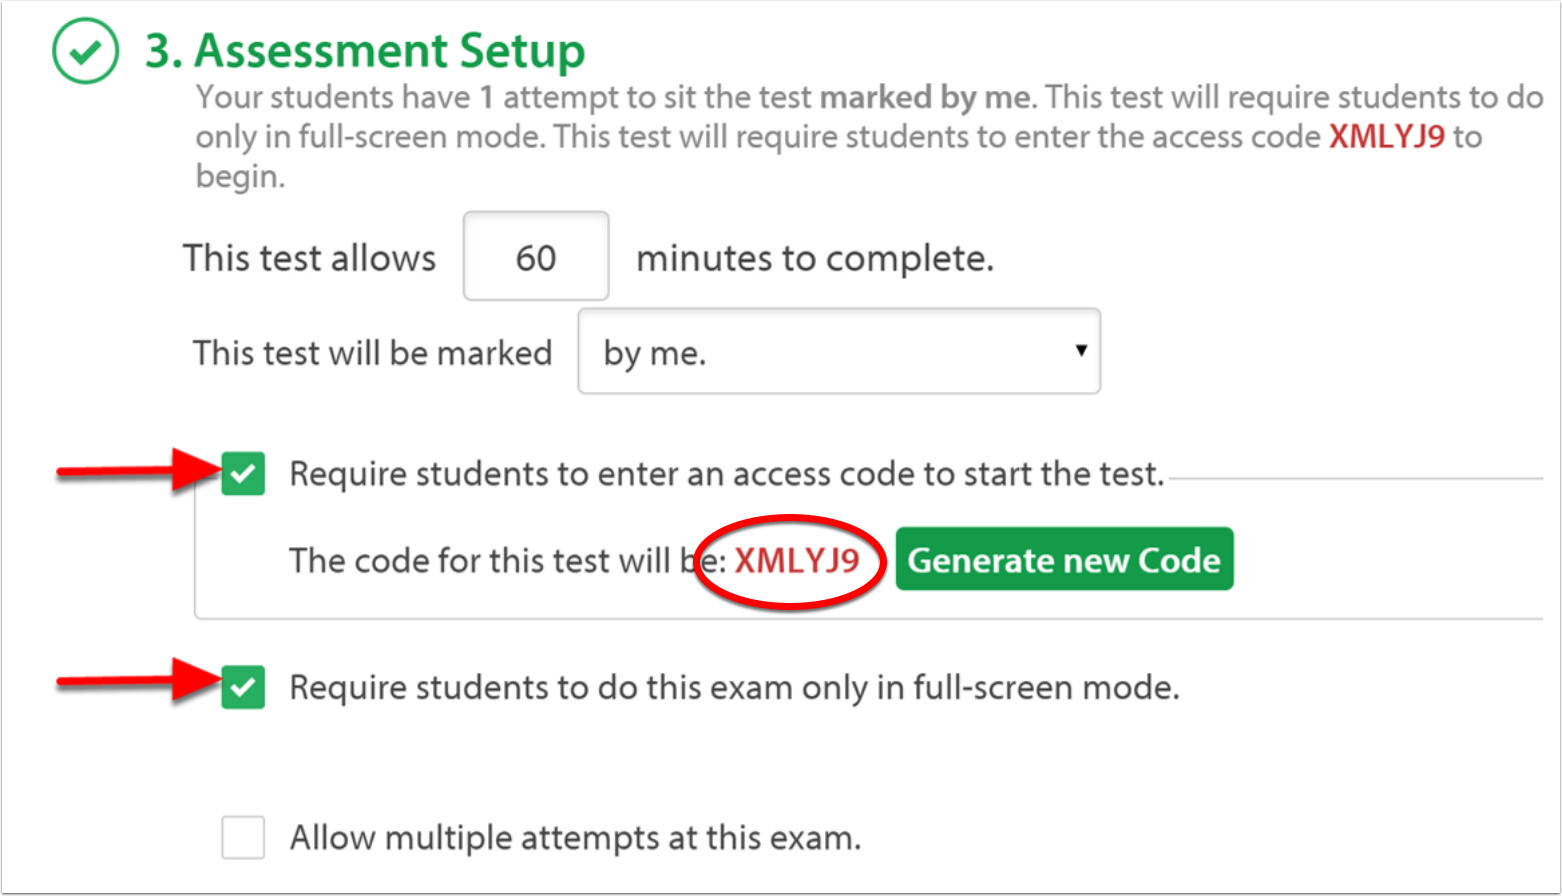 Step 3: Assessment Setup.